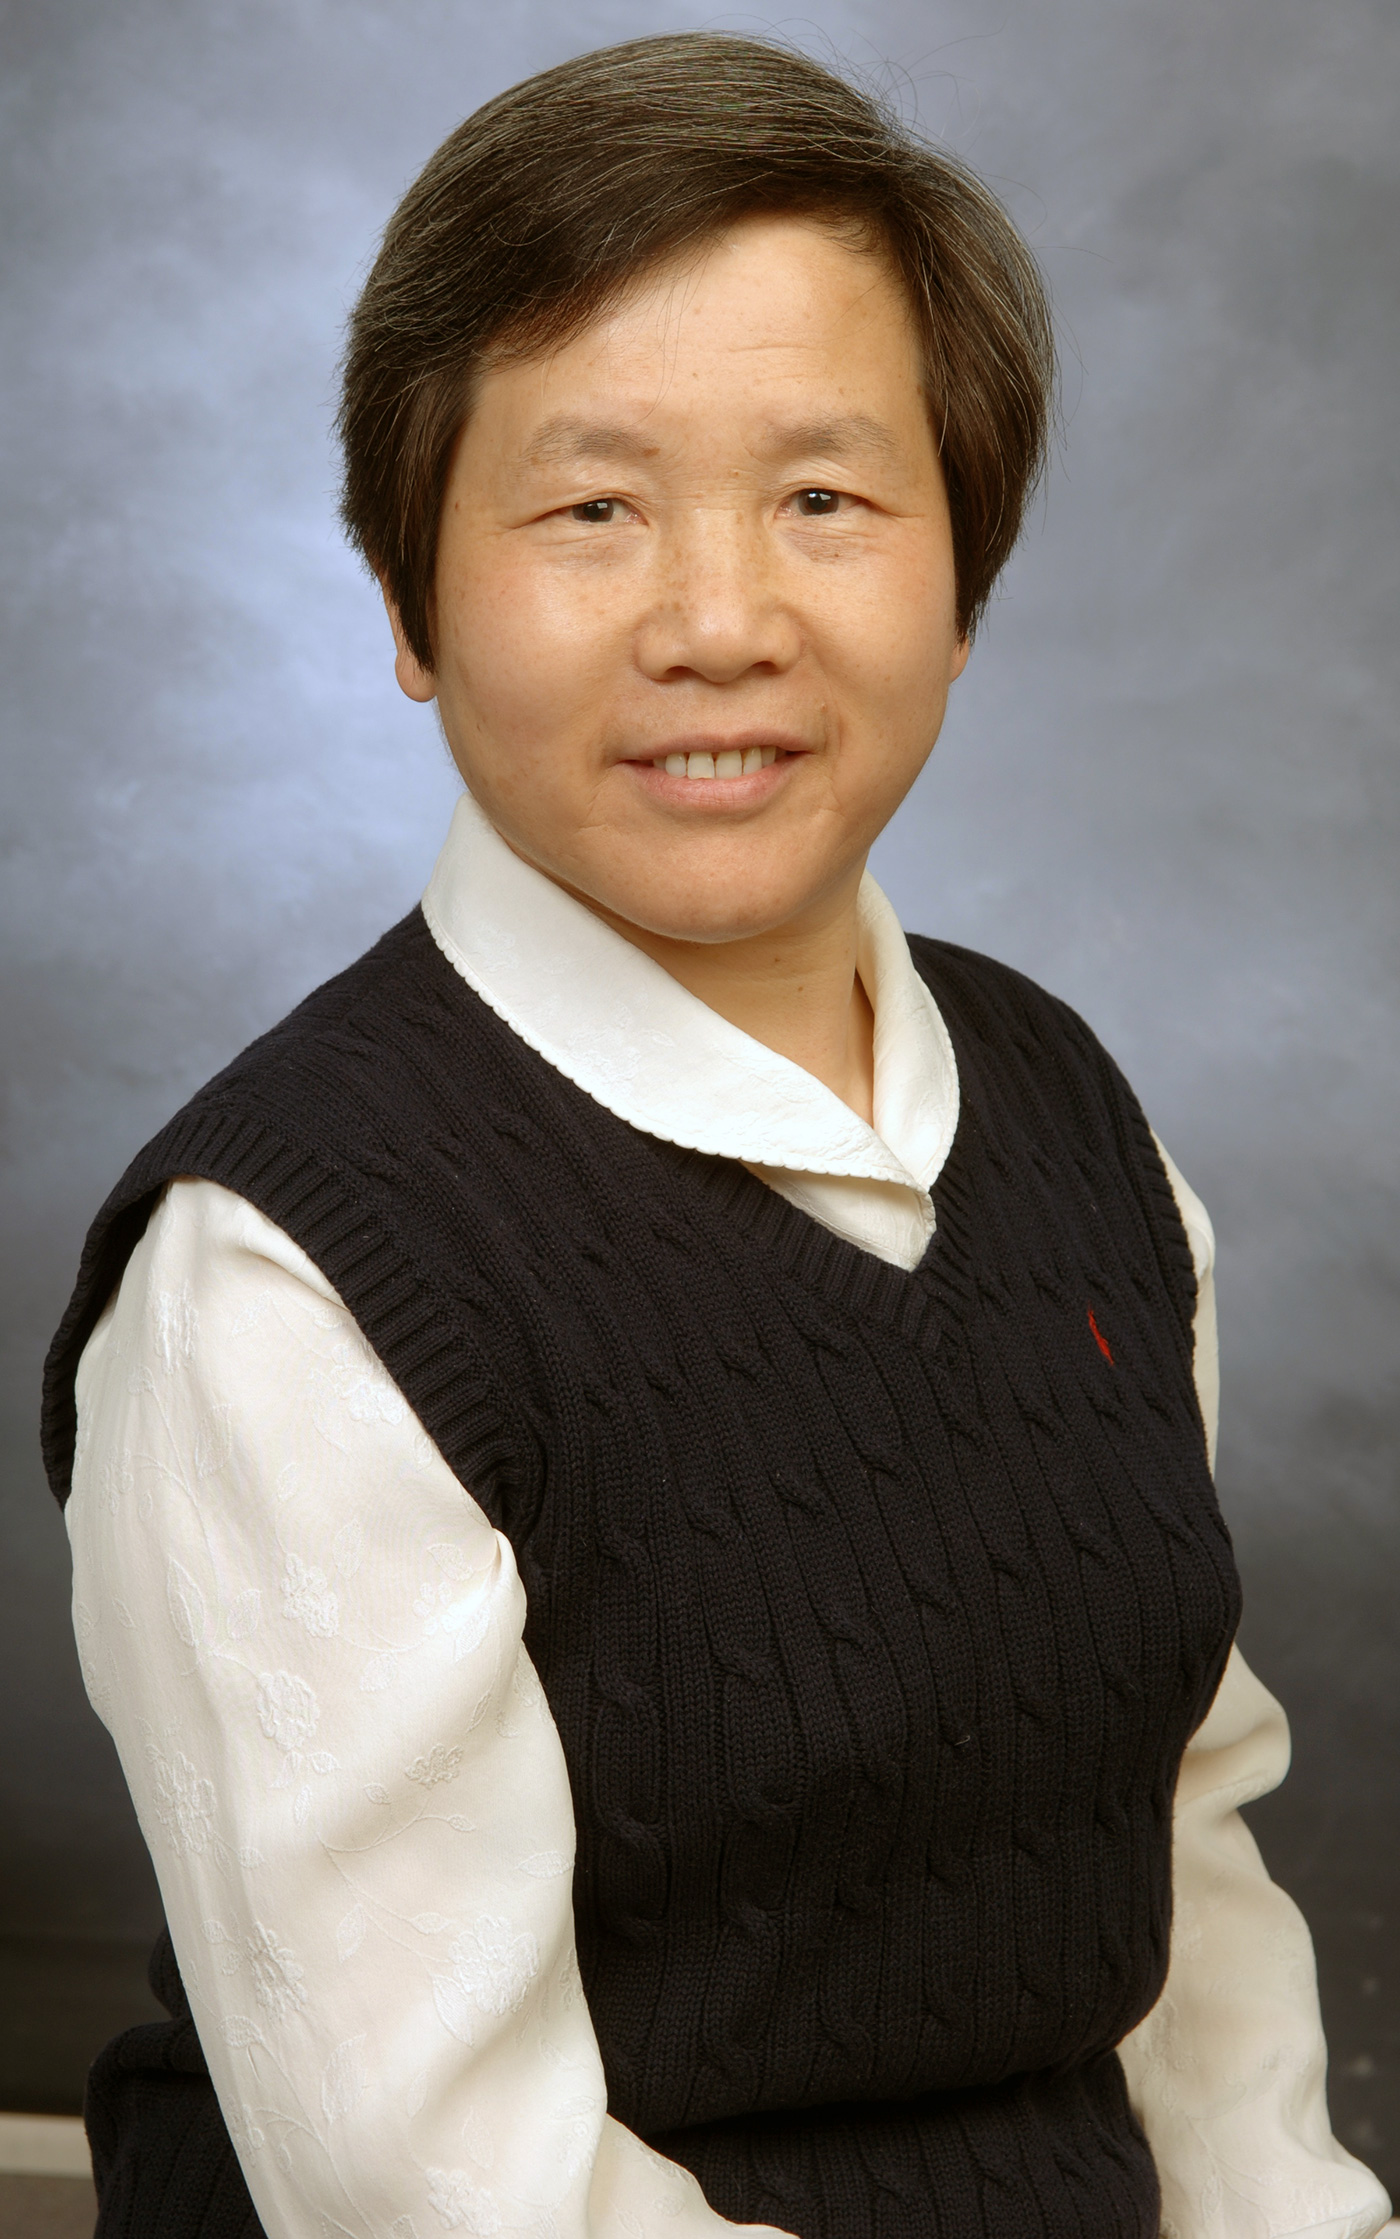 Shehong Chen is an Associate Professor in the History Department at UMass Lowell.